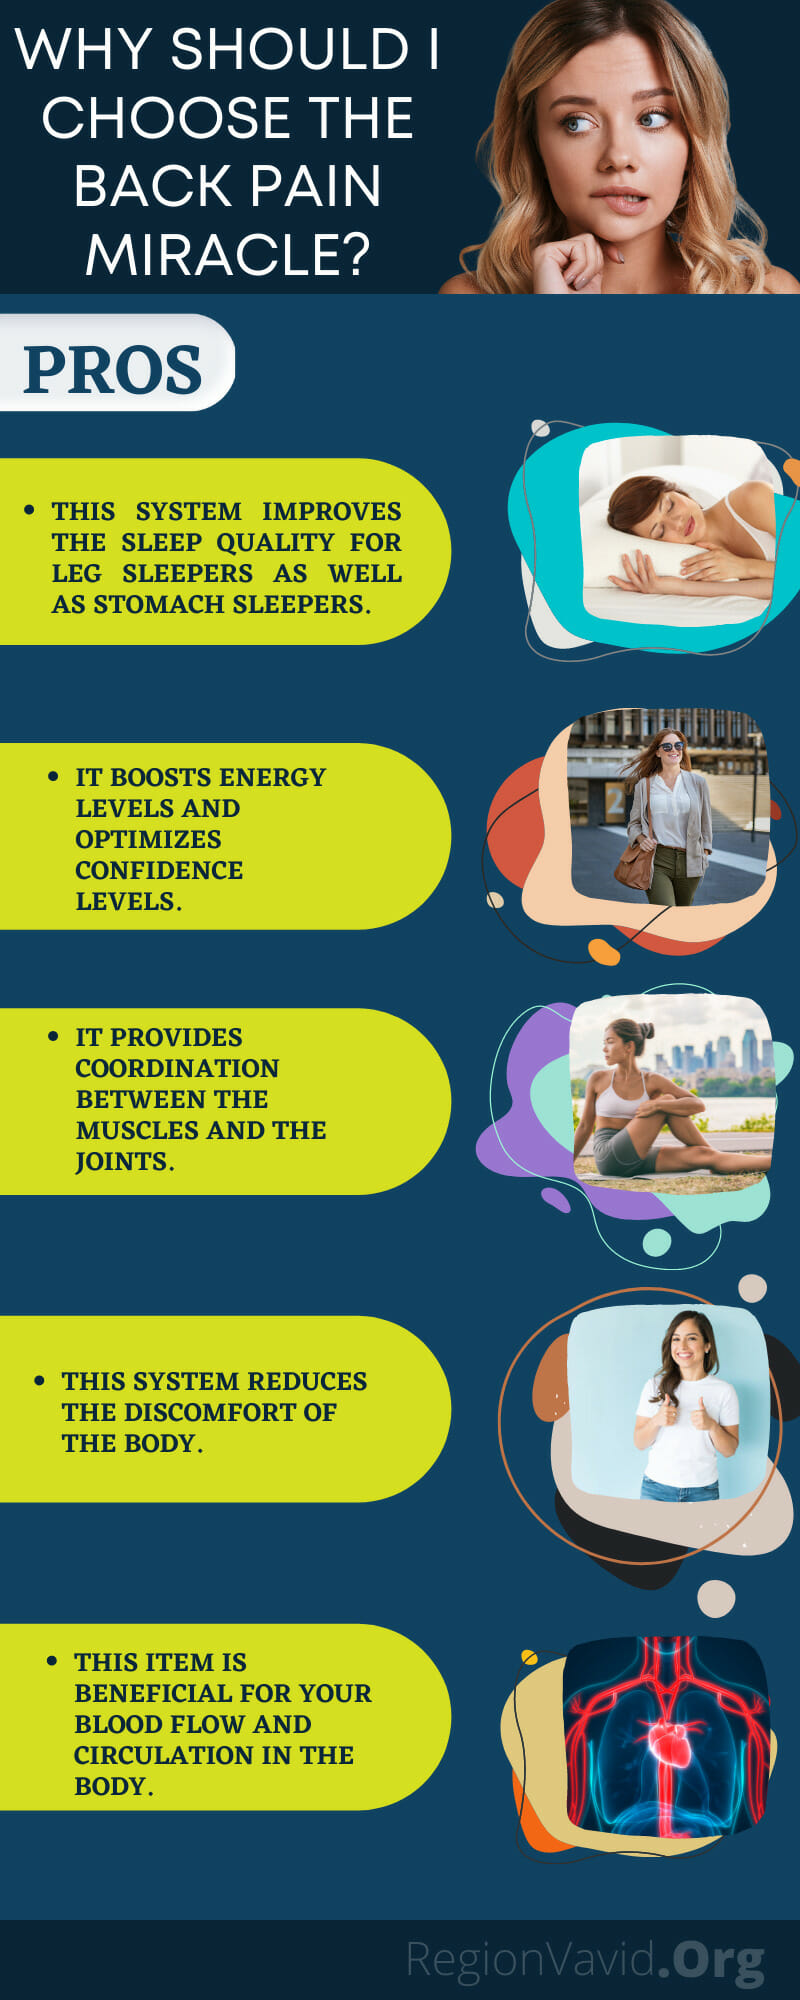 The Back Pain Miracle Benefit